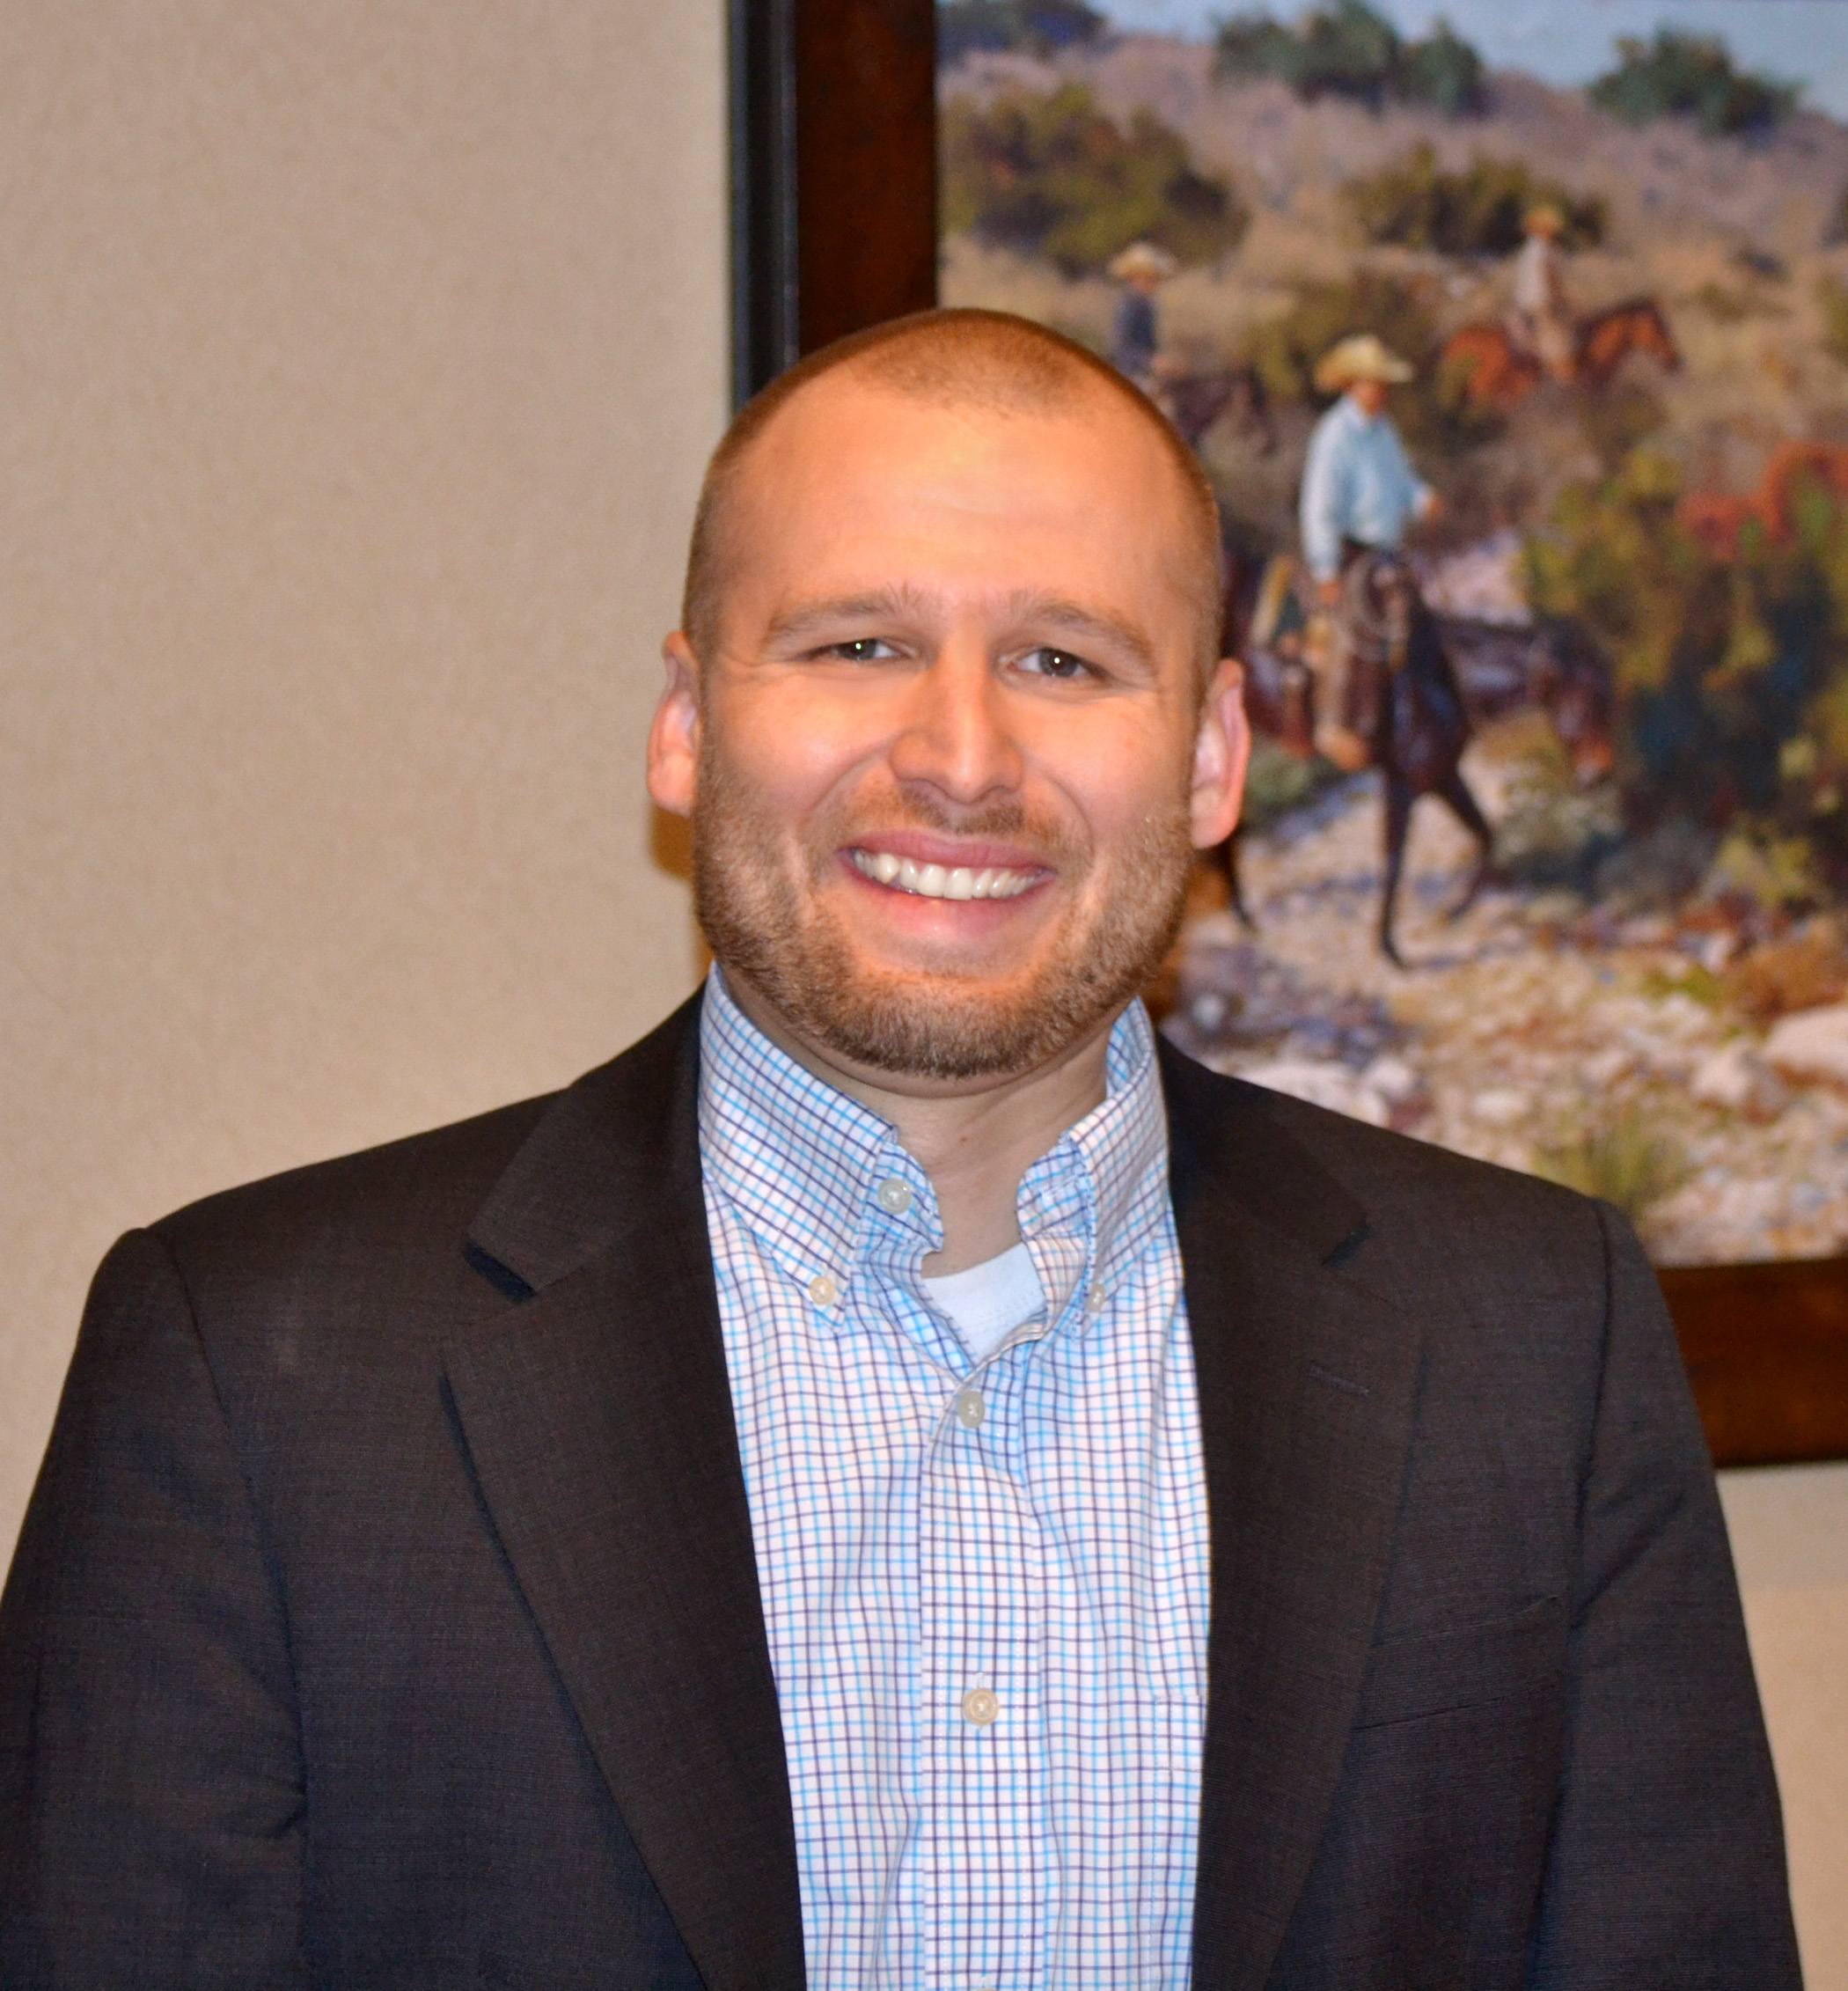 Shawn Darcy, Director of Market Research at the National Cattlemen's Beef Association